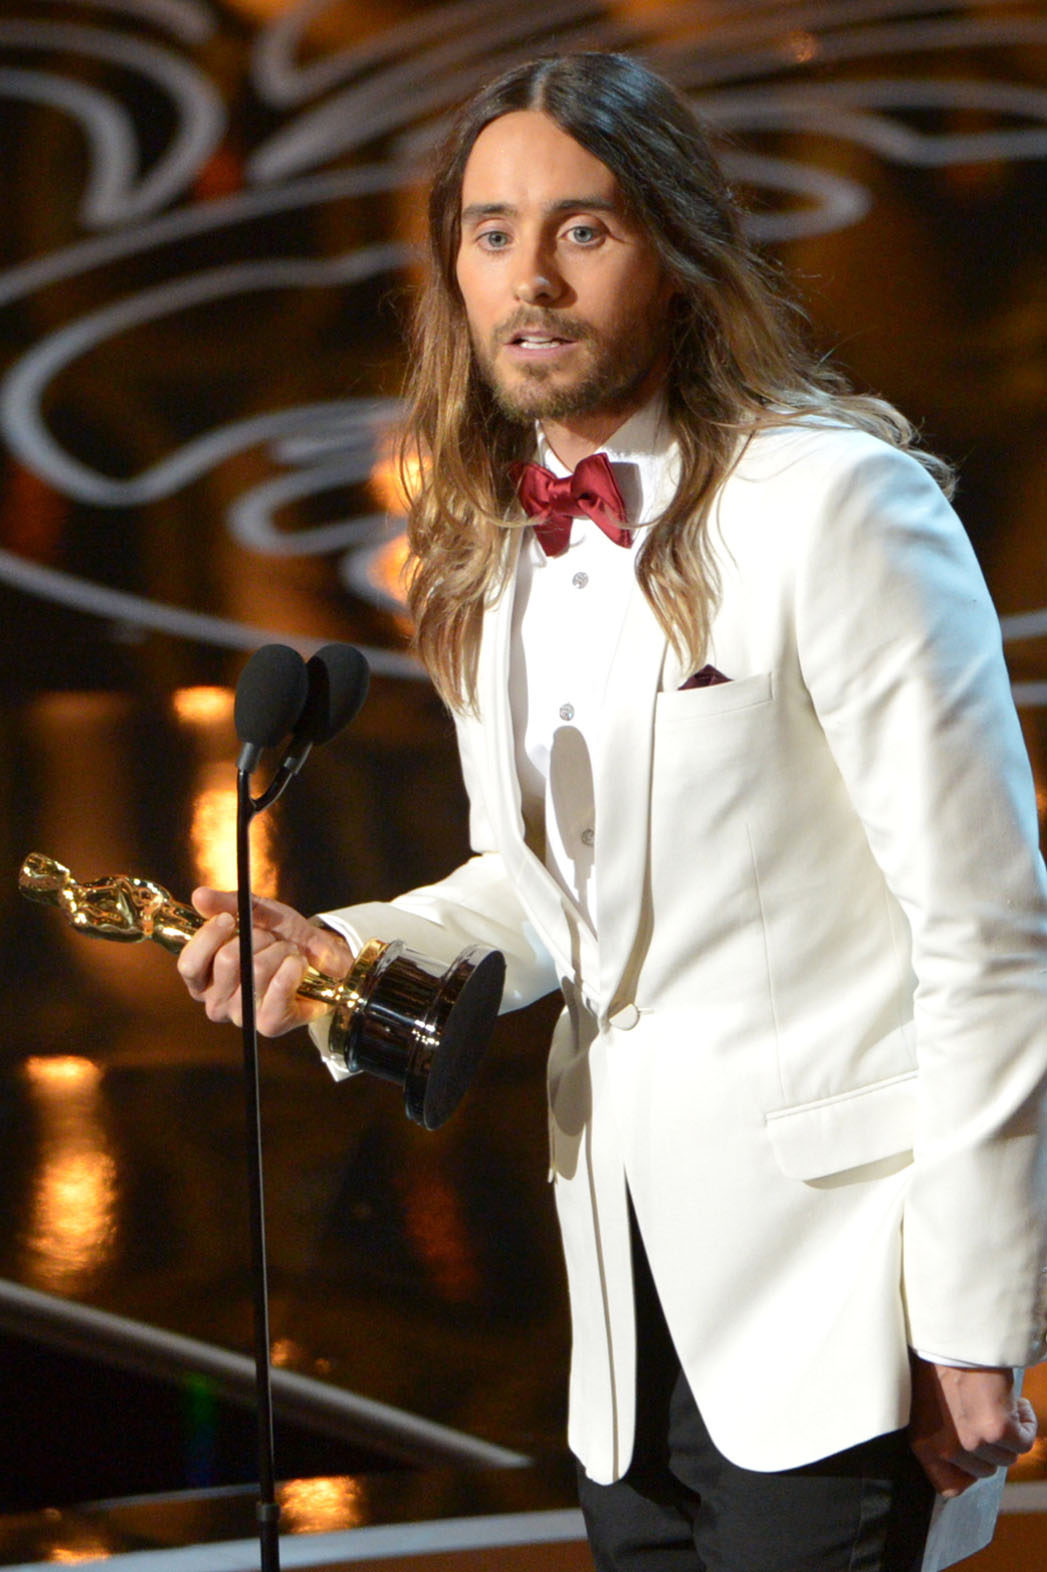 Jared Leto Onstage - P 2014